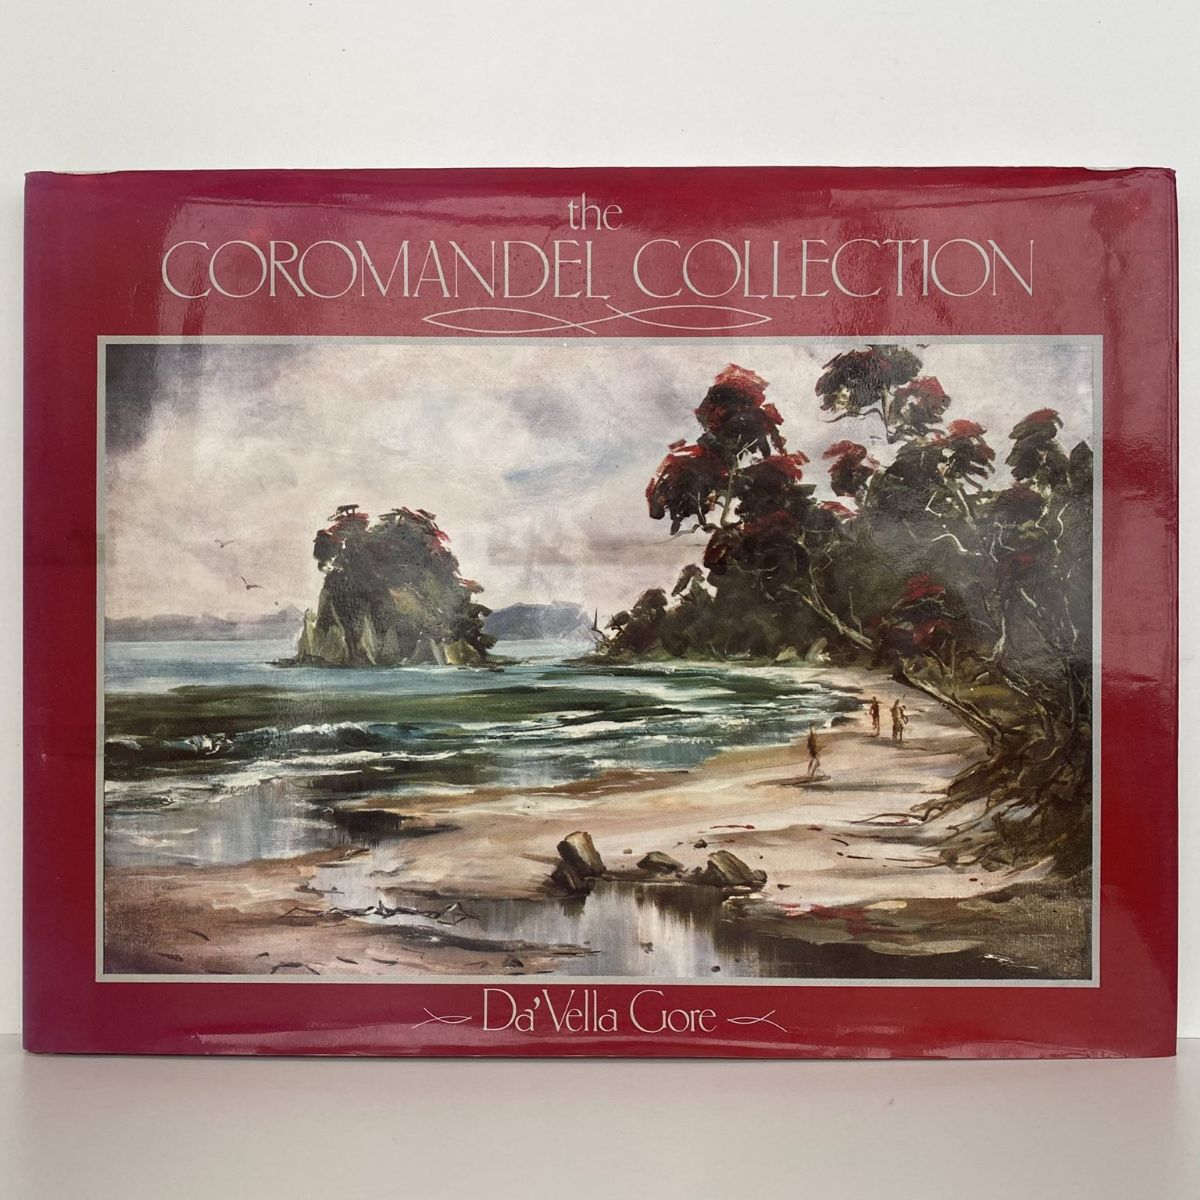 THE COROMANDEL COLLECTION